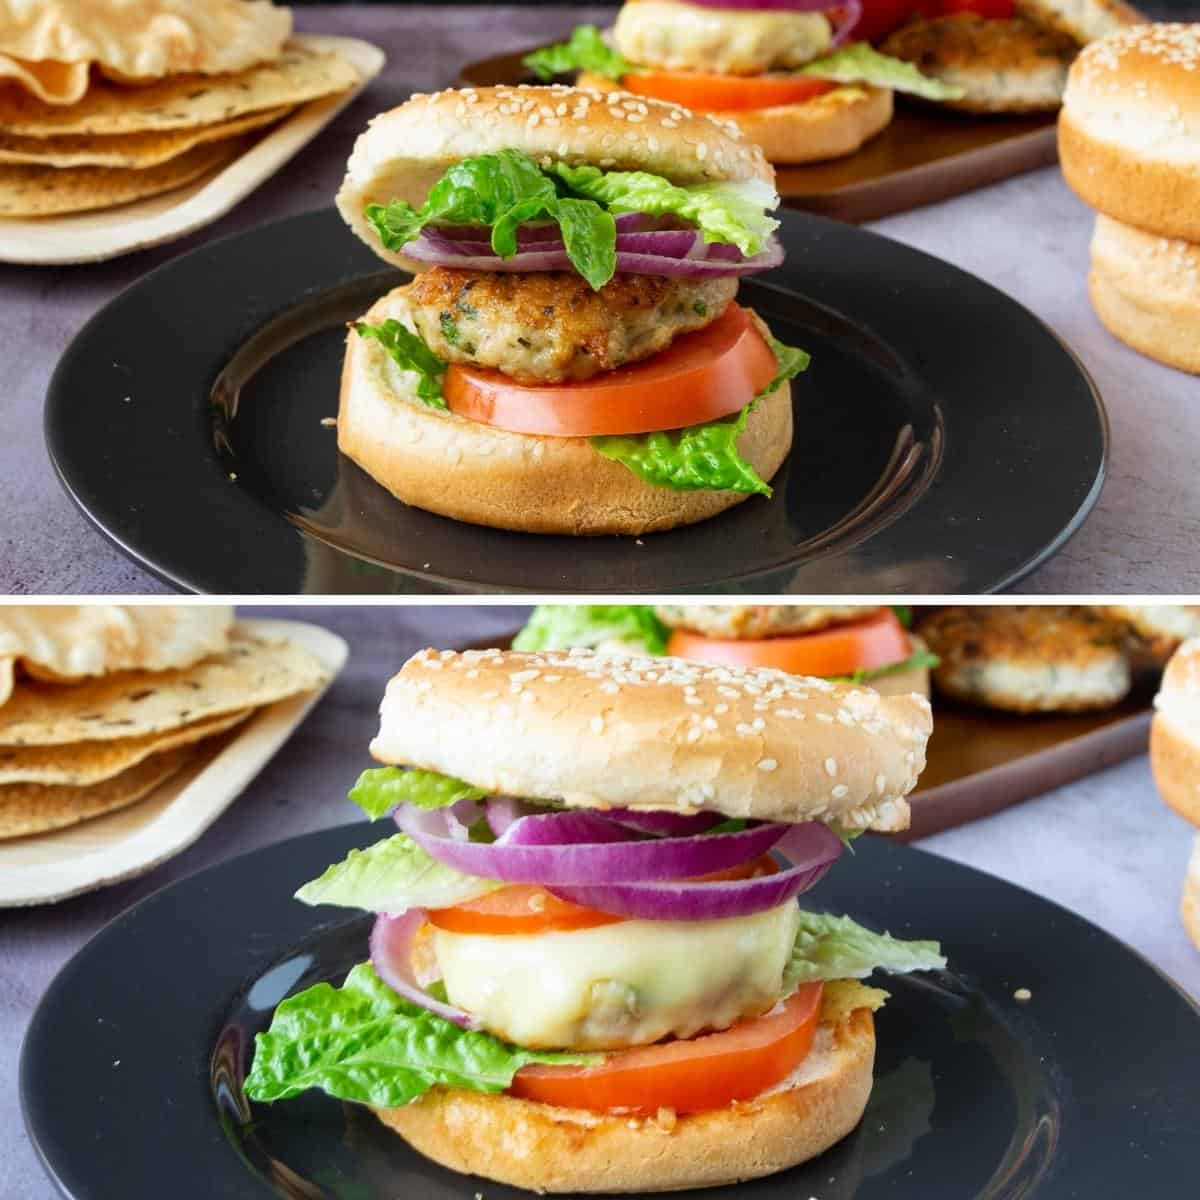 A collage with chicken burger patties on a plate.